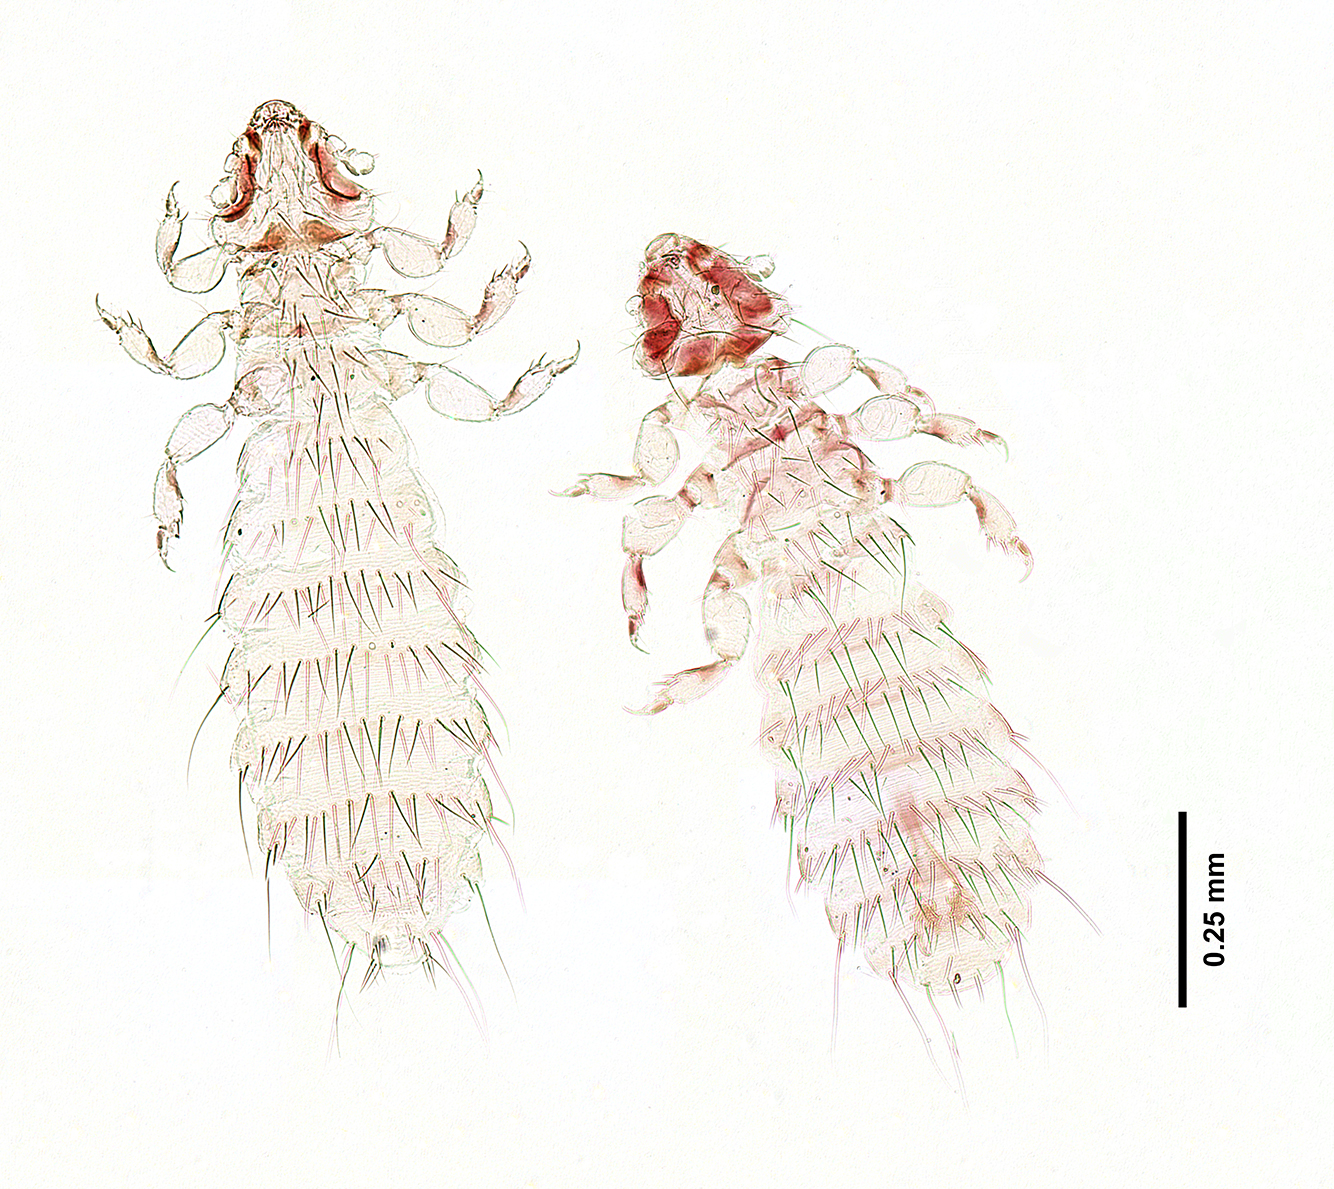 These are two of the louse that Lauren Smith was scanning.